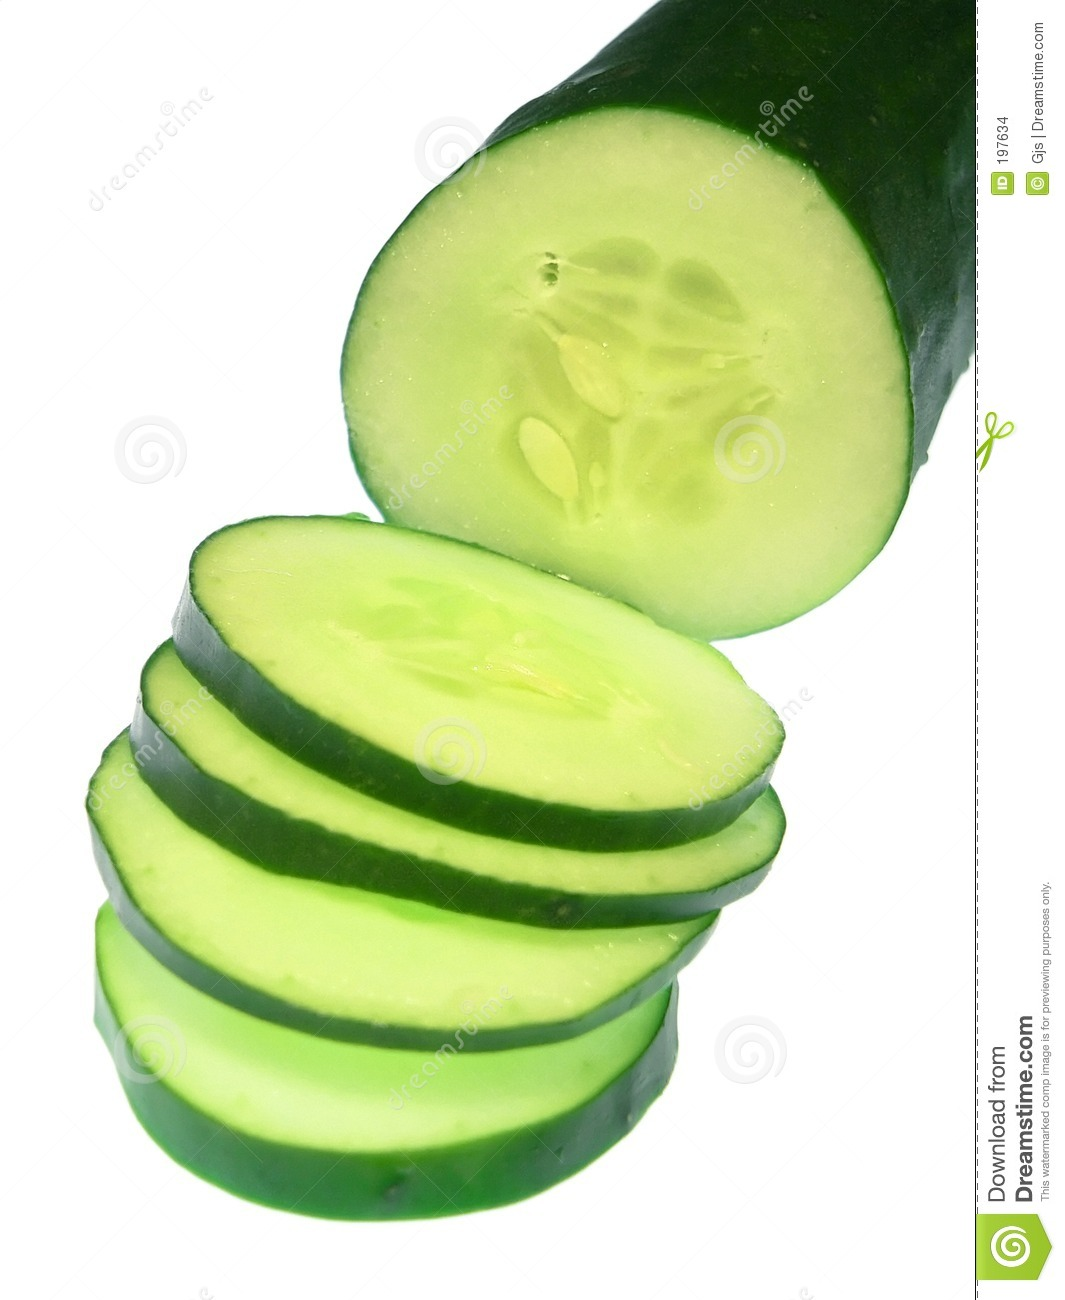 Green cucumbers clipart.